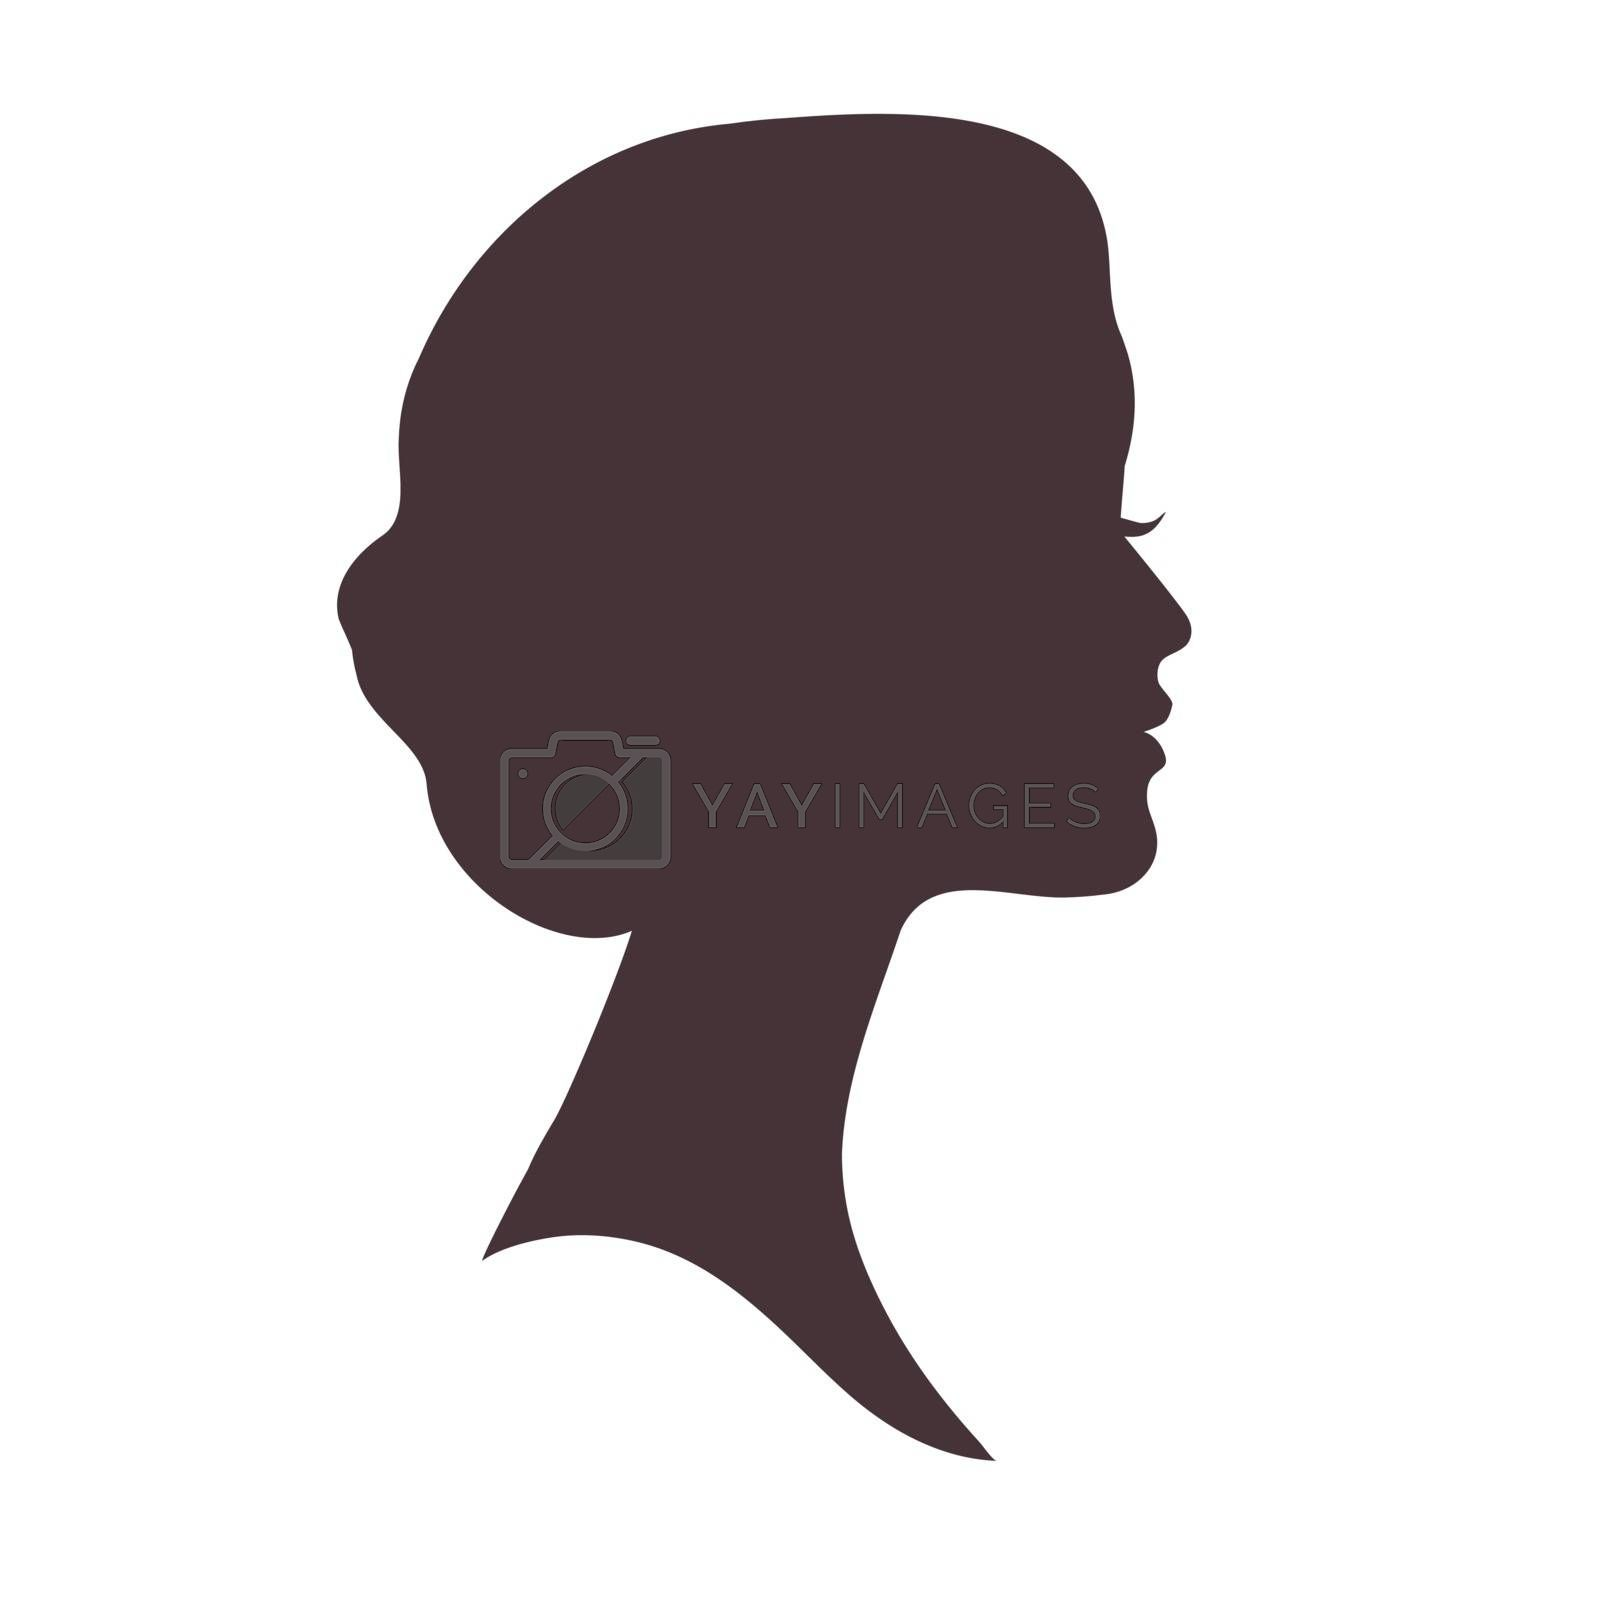 Beautiful female head with curly hair silhouette. Black profile face